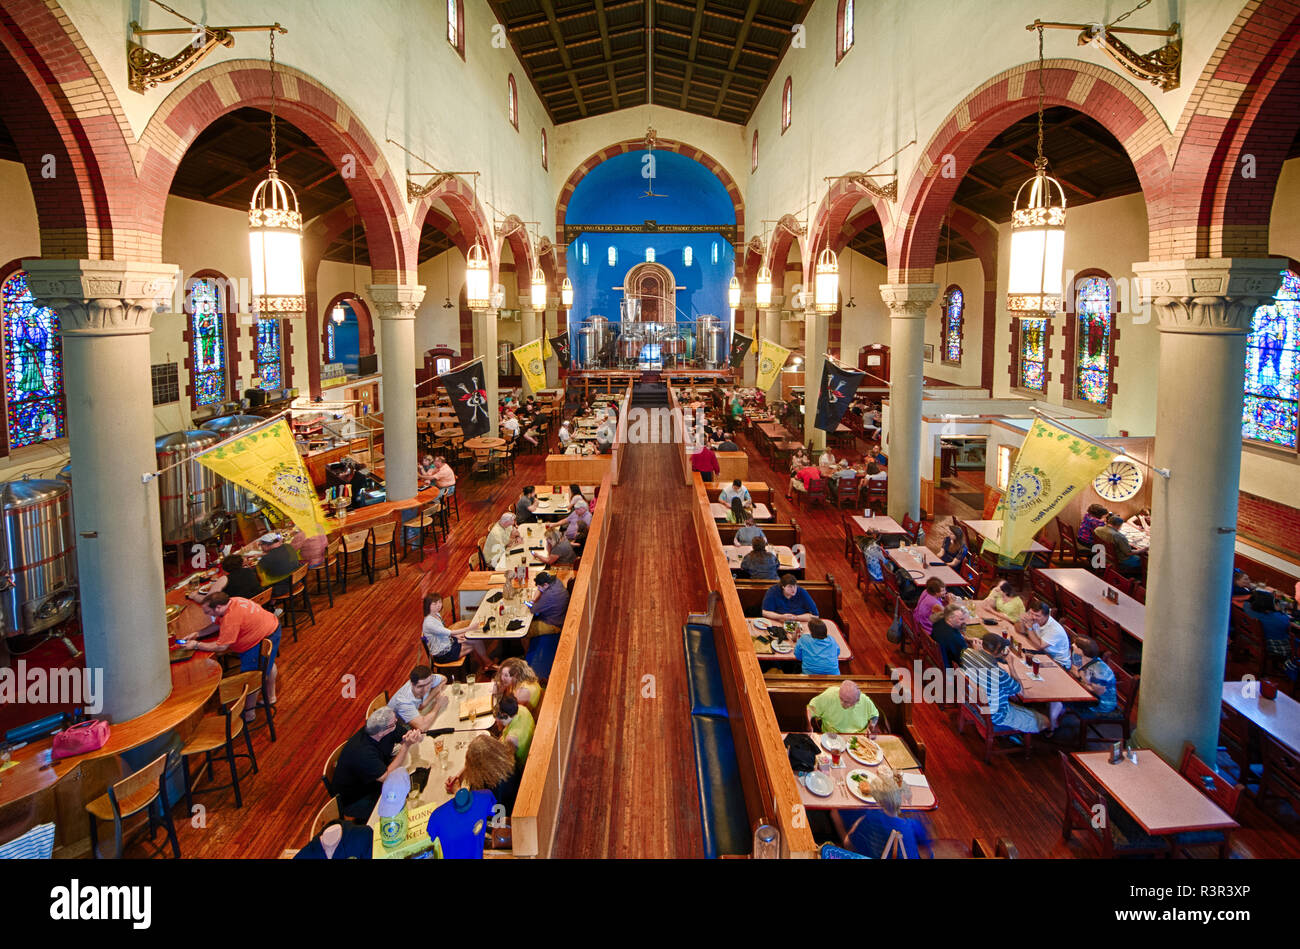 The Church Brew Works is a brewpub in Pittsburgh, Pennsylvania, USA, set in the confines of a restored Roman Catholic church (formerly St. John the Ba - Stock Image